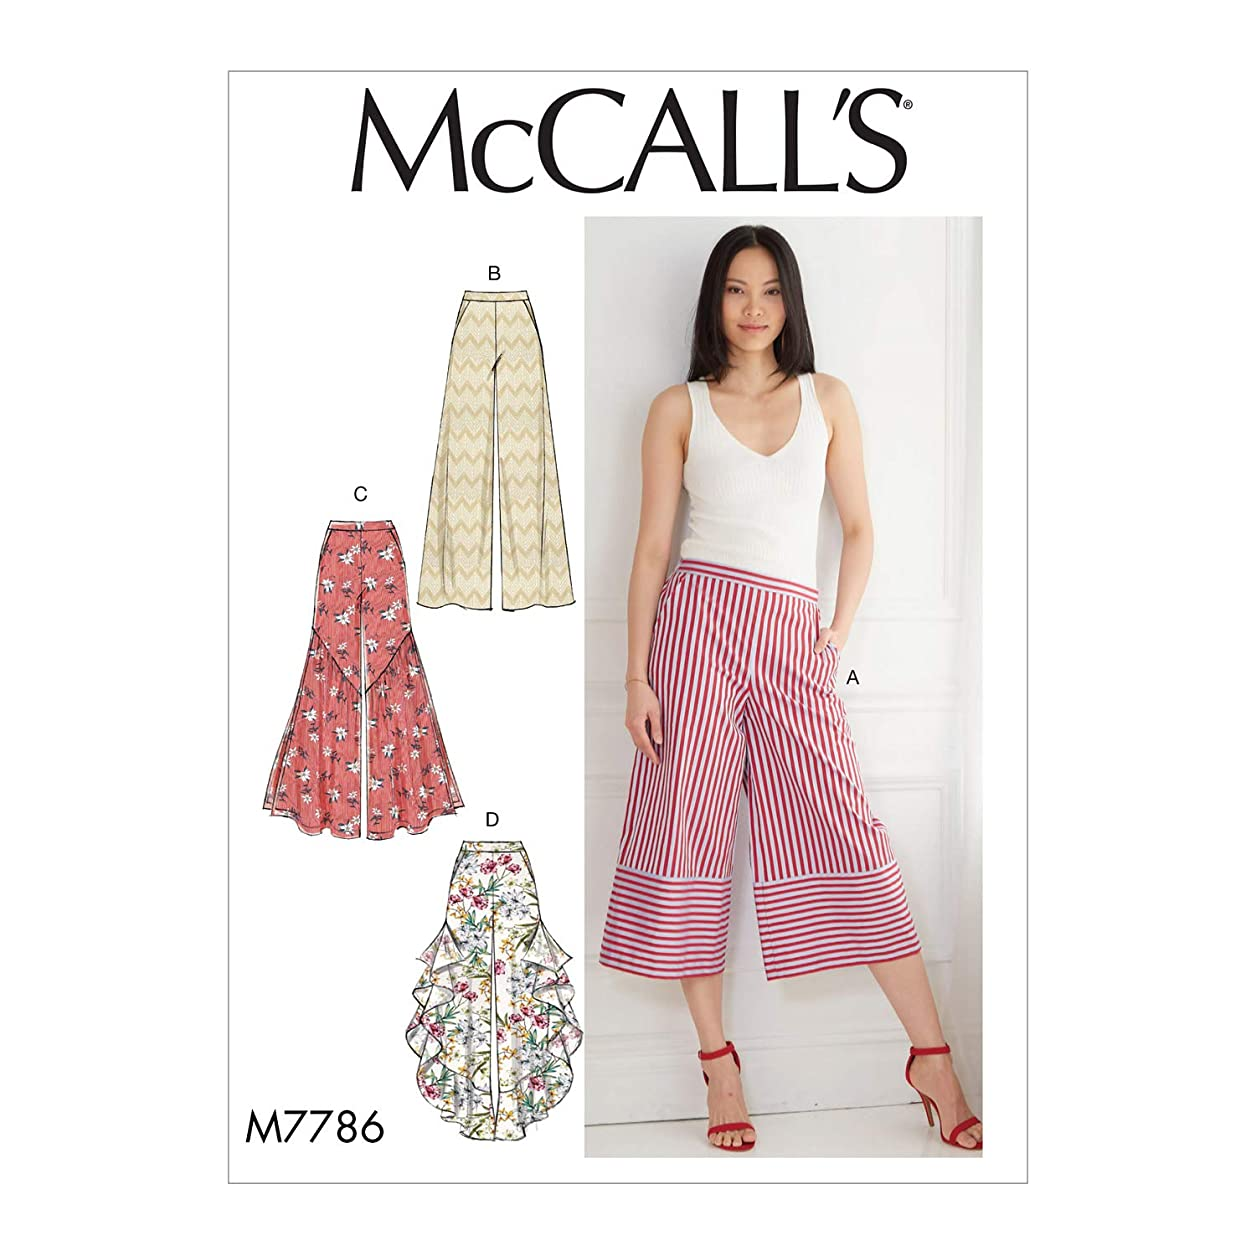 McCall's Patterns M7786 Sewing Pattern E5 (14-16-18-20-22) Multicolor wymazdclpybnhnke